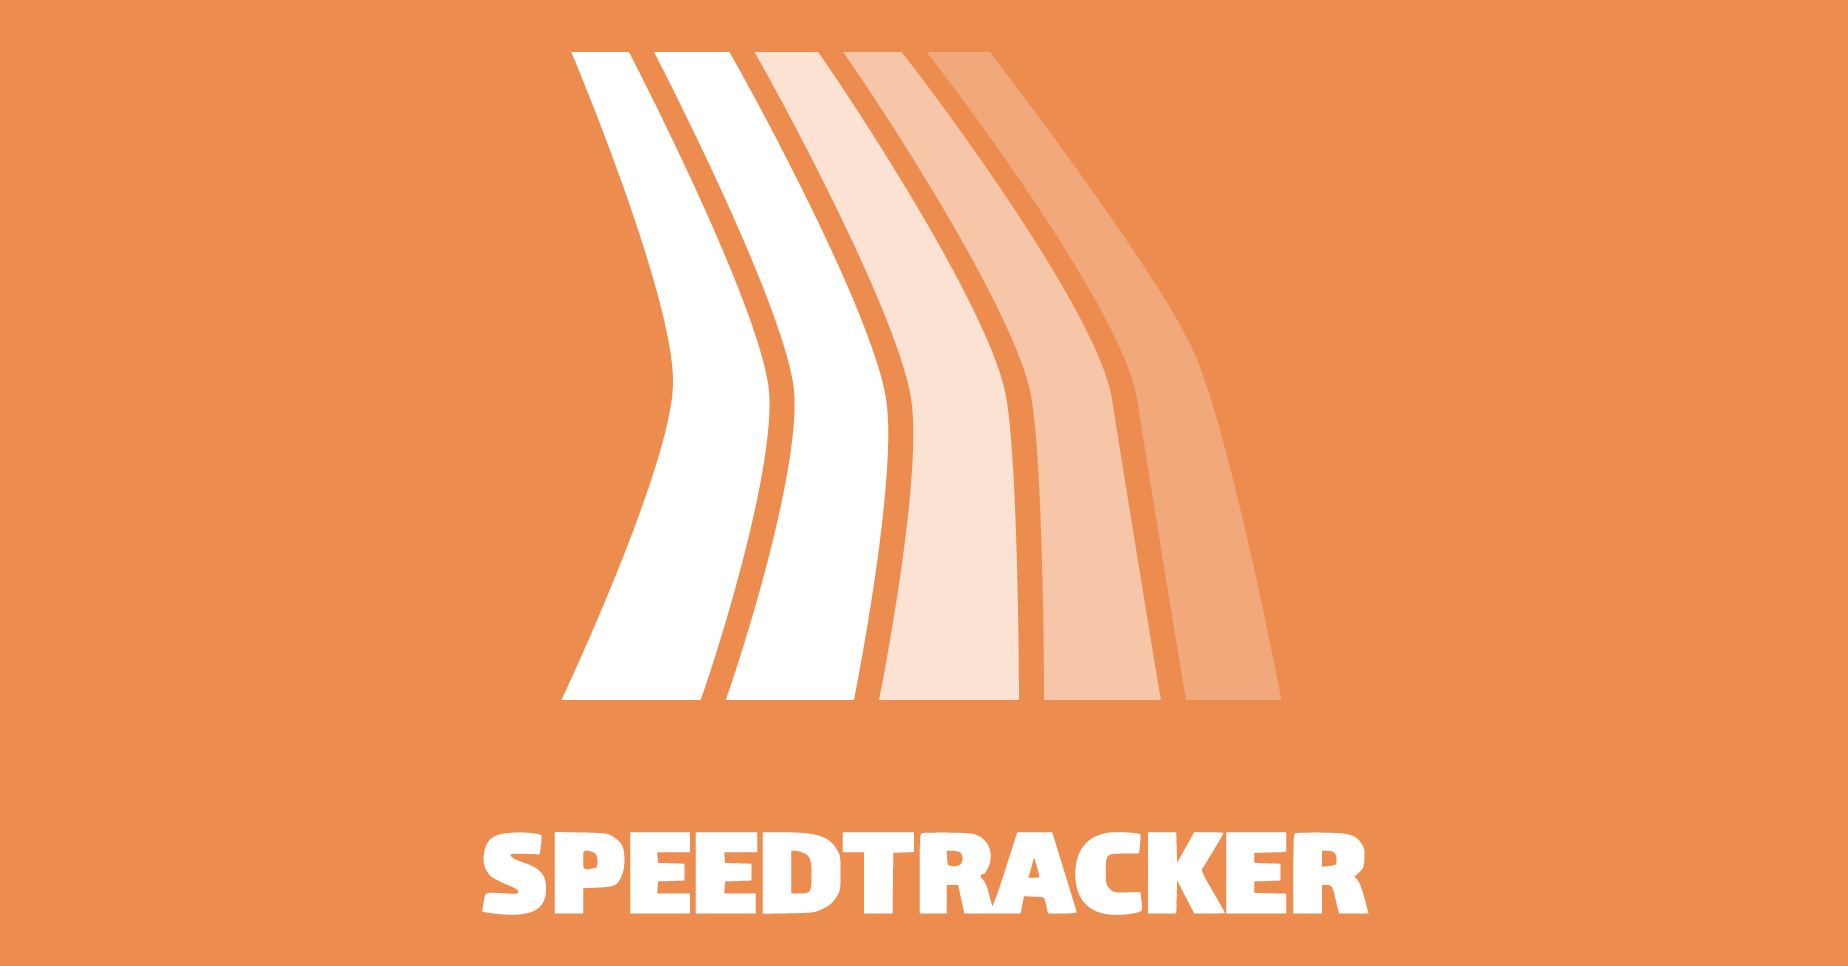 SpeedTracker